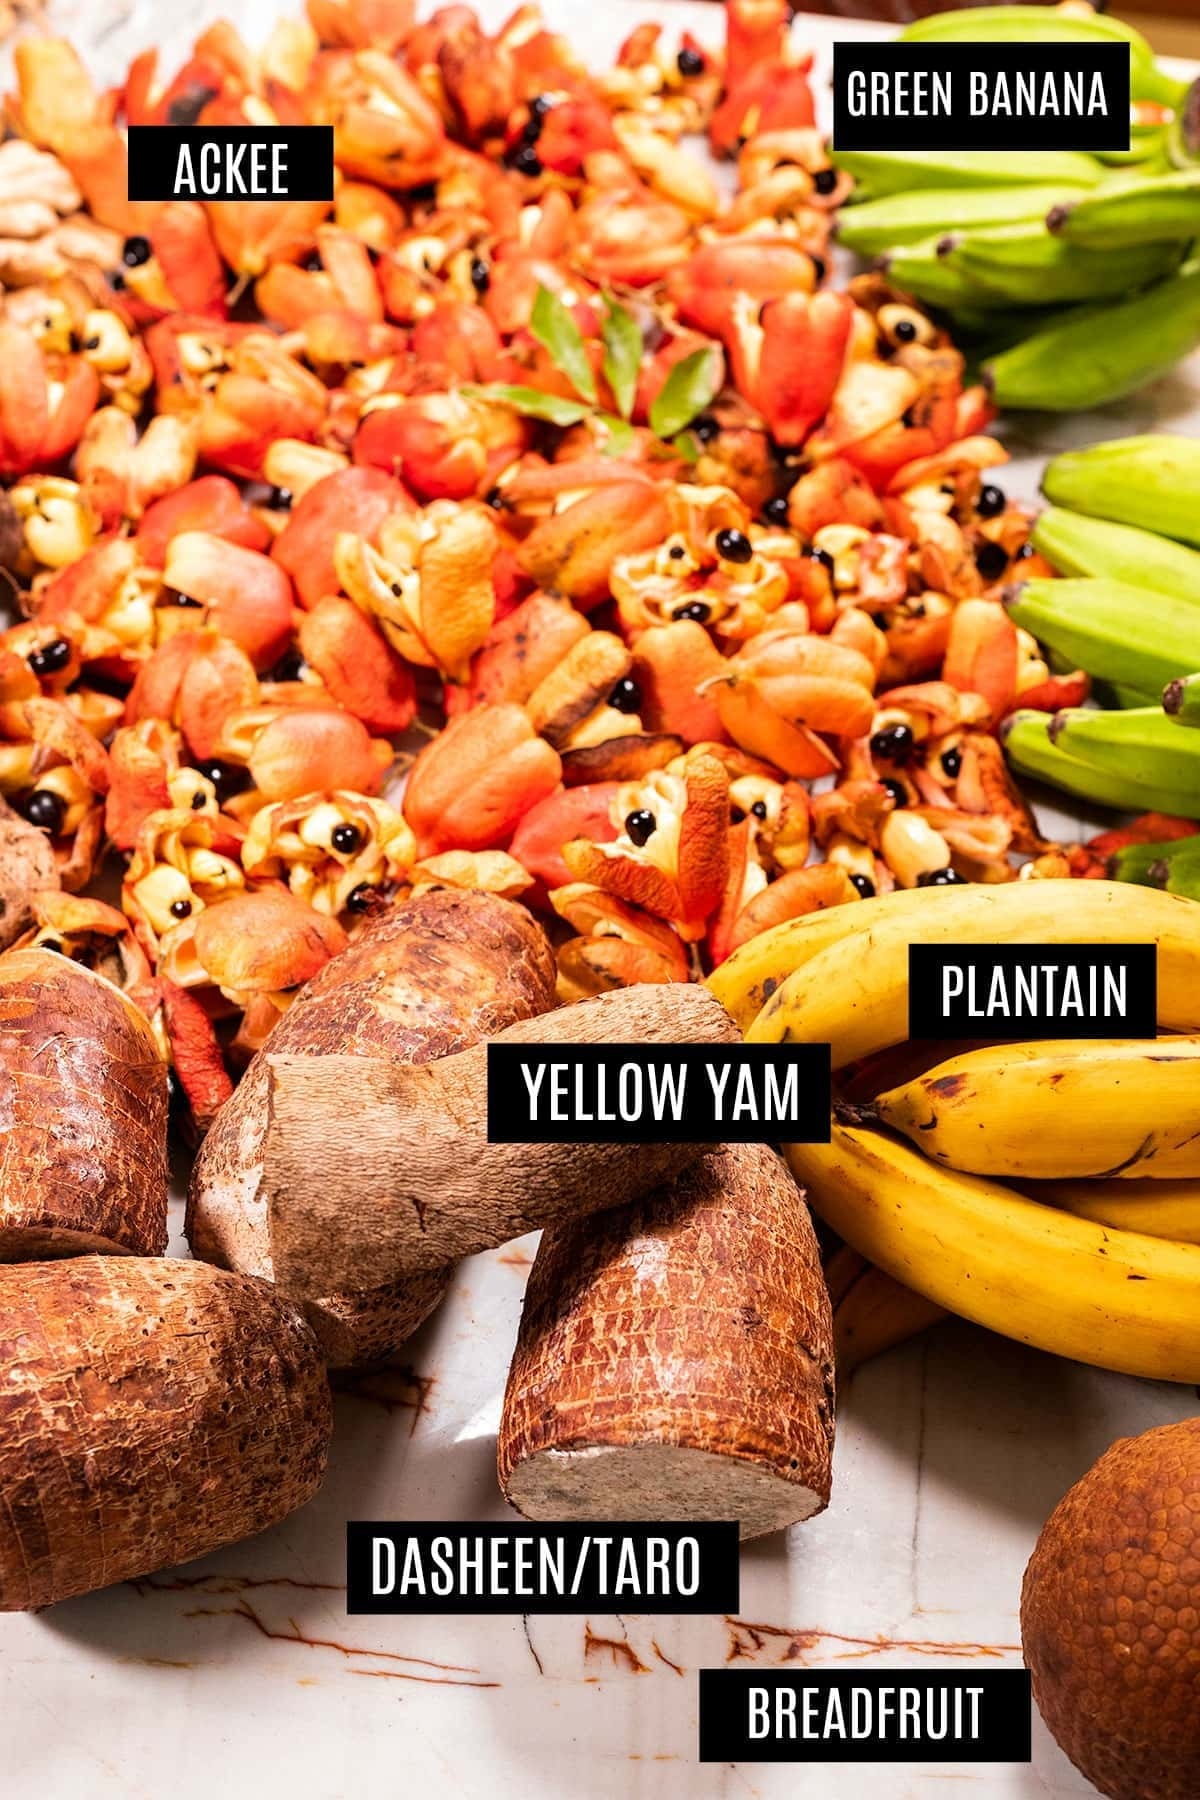 yellow yam with Jamaican produce, ackee, plantain, green banana, dasheen on a marbled counter